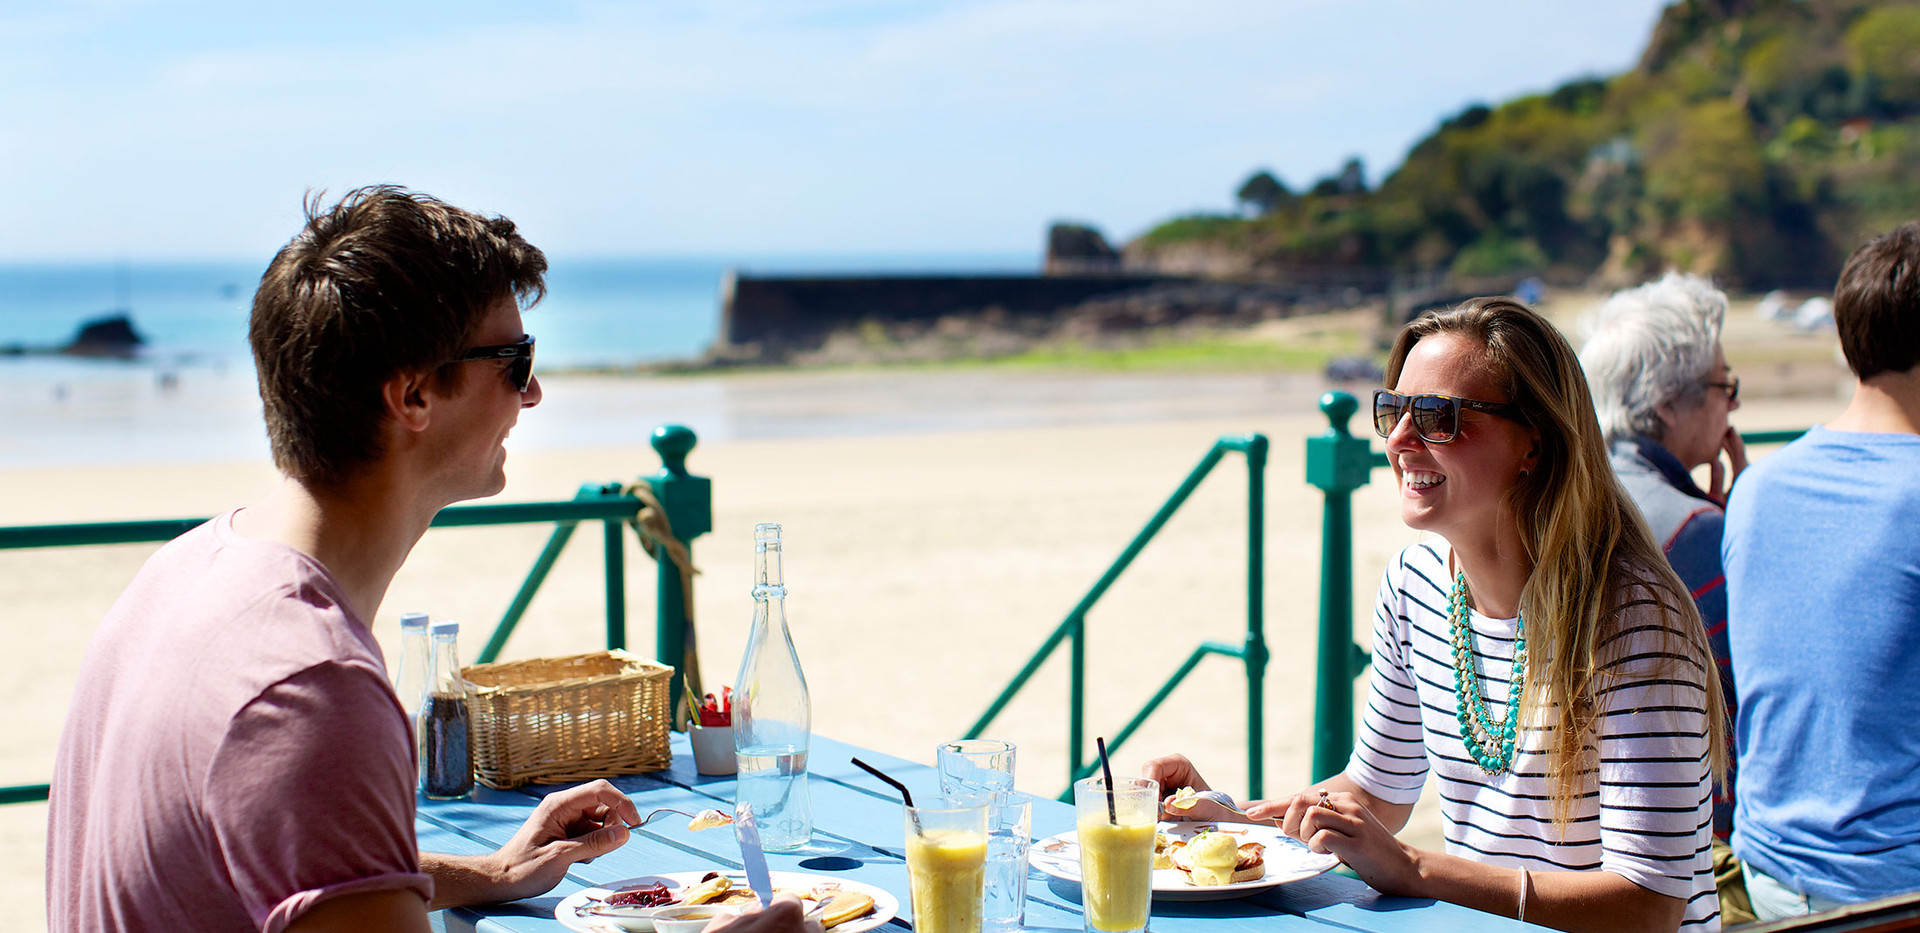 Crab-Shack-St-Brelade-Terrace-View-21.jp